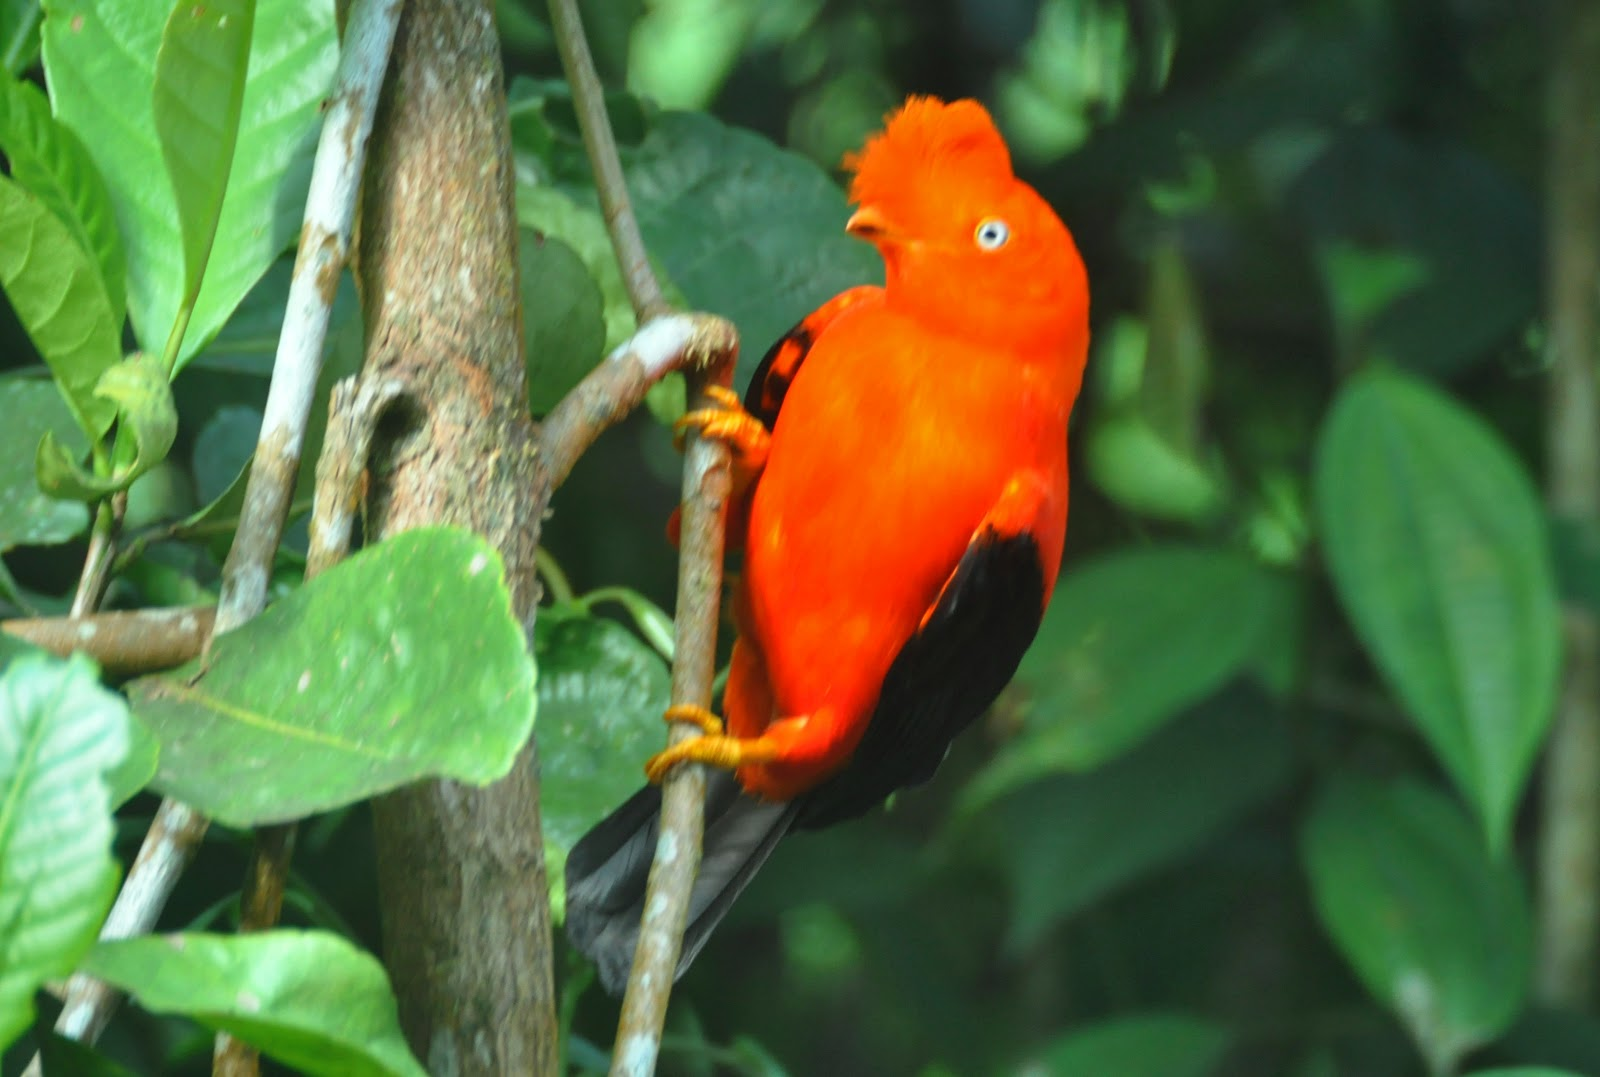 Andean Cock-of-the-rock on the branch